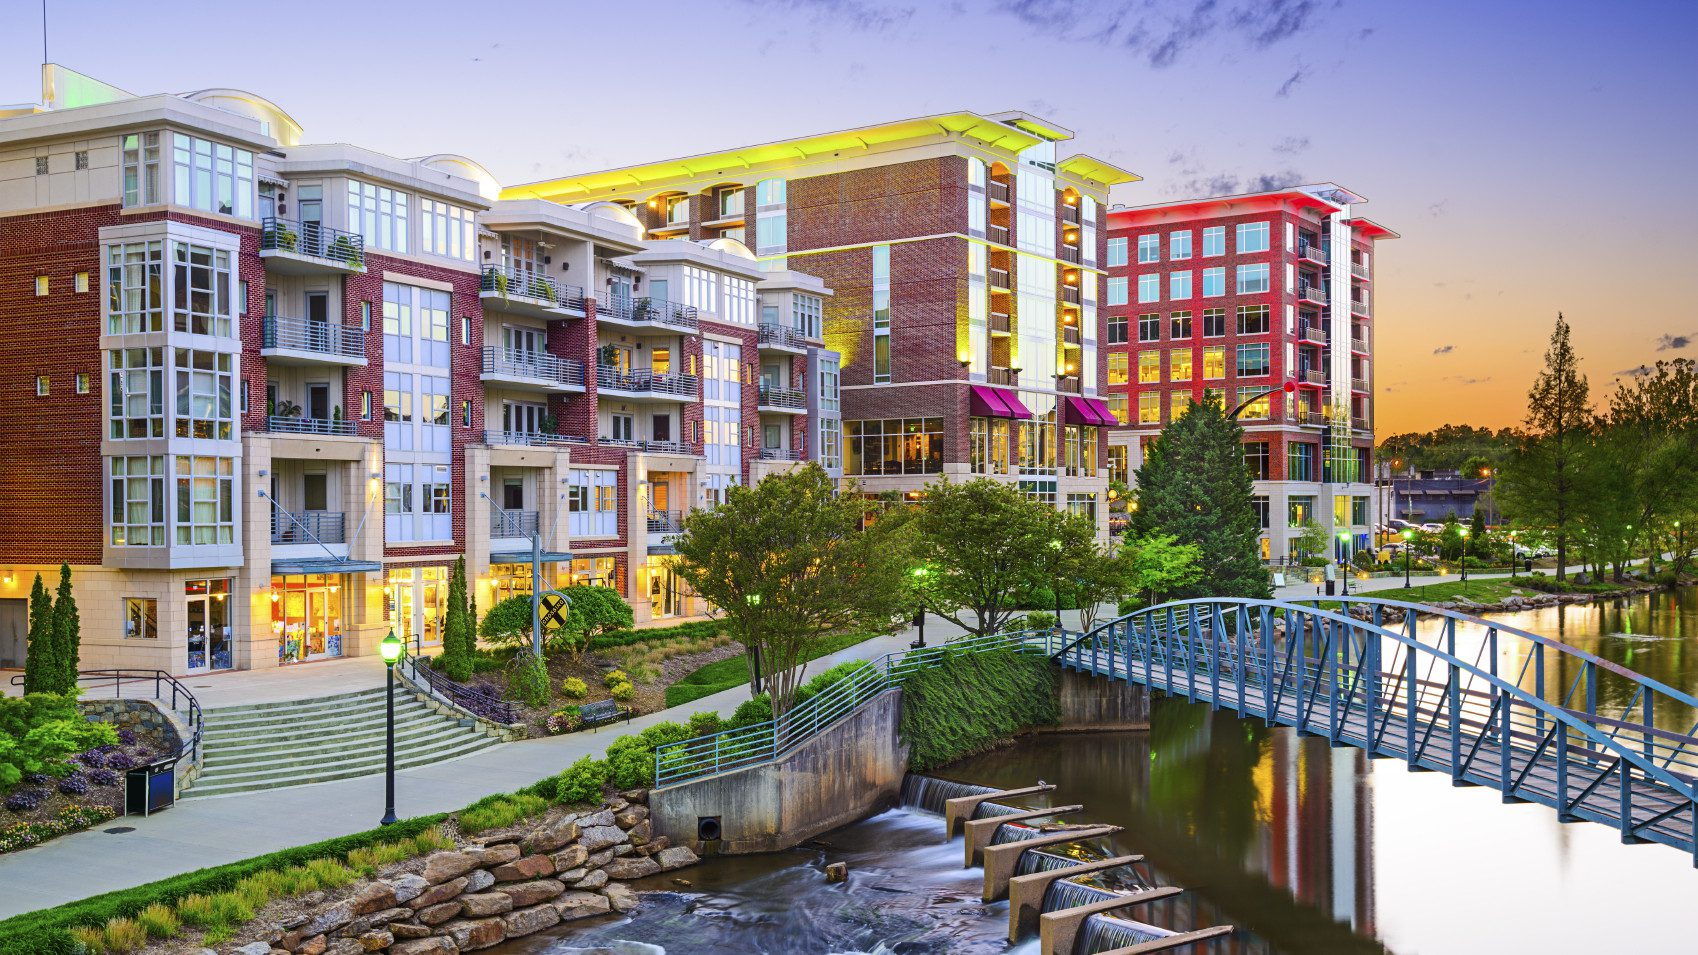 The downtown in Greenville, SC has been revitalized with artist studios and the renovation of a park.